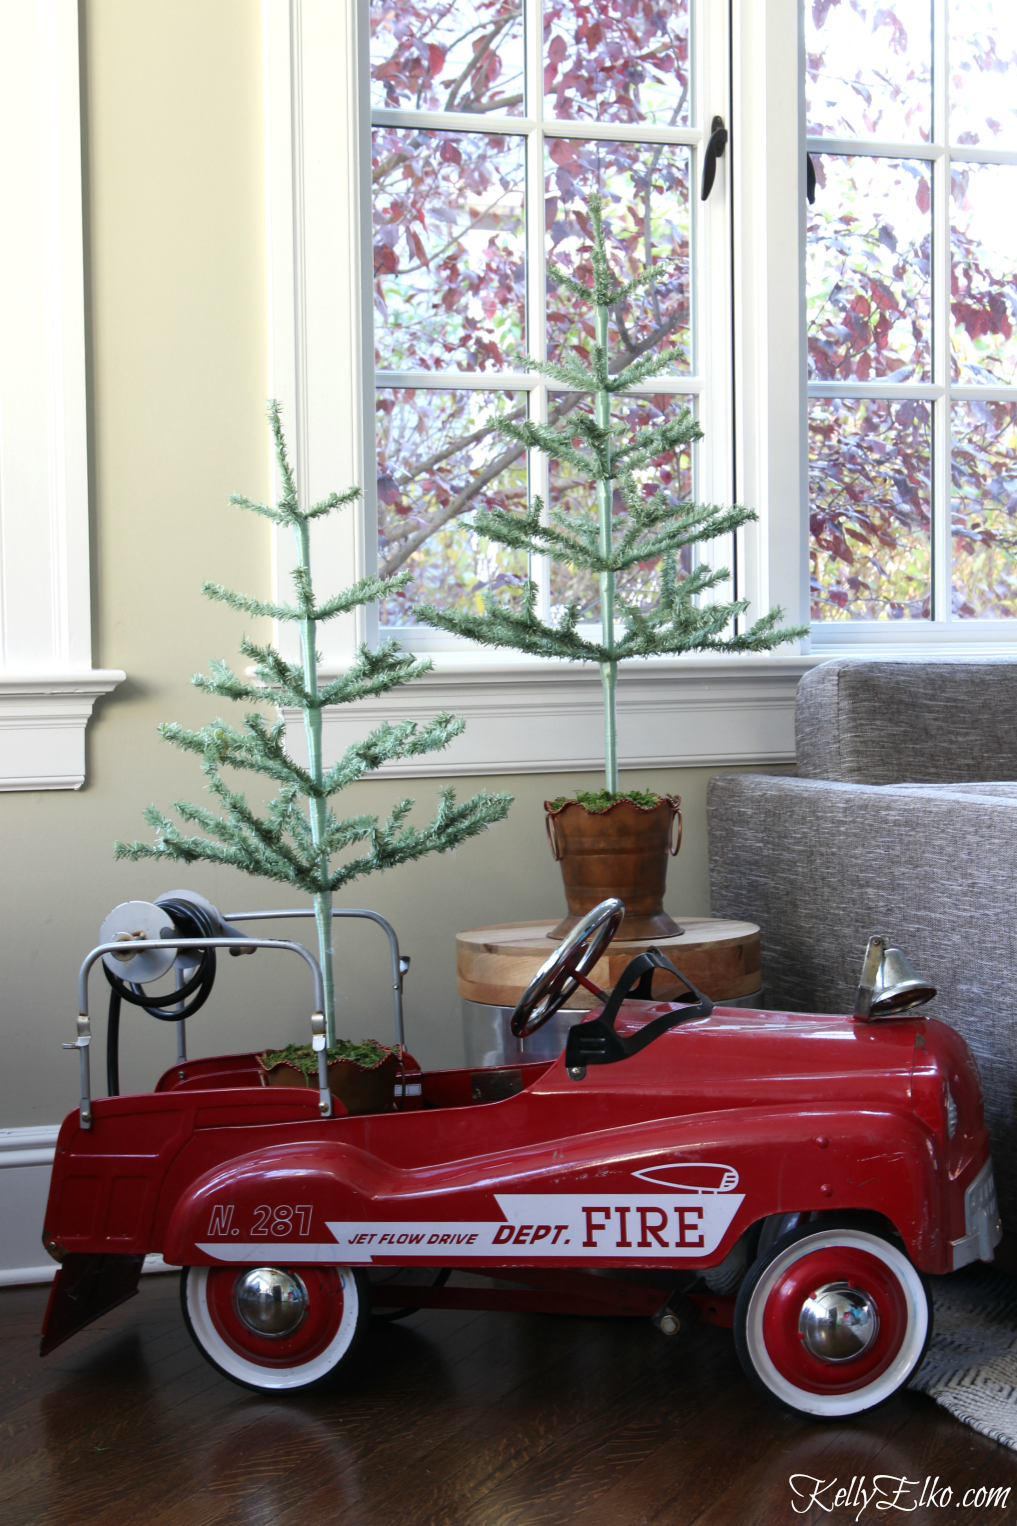 How cute is this vintage pedal car fire truck with feather trees kellyelko.com